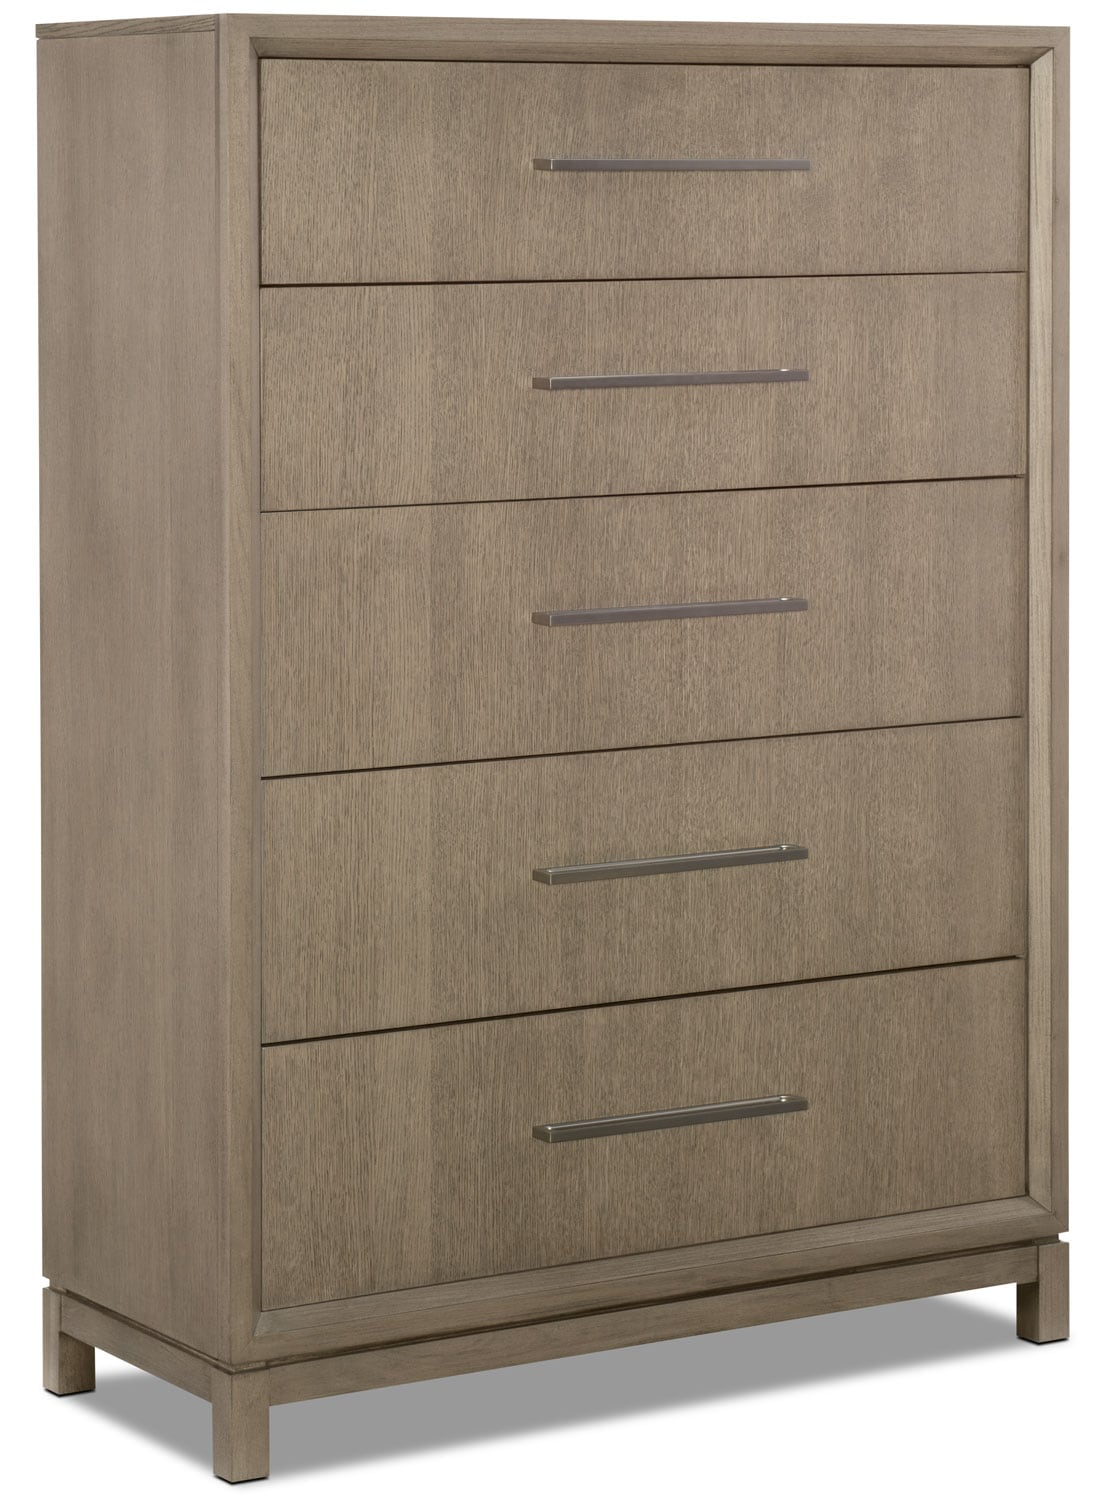 Bedroom Furniture - Rachael Ray Highline 5-Drawer Chest - Greige